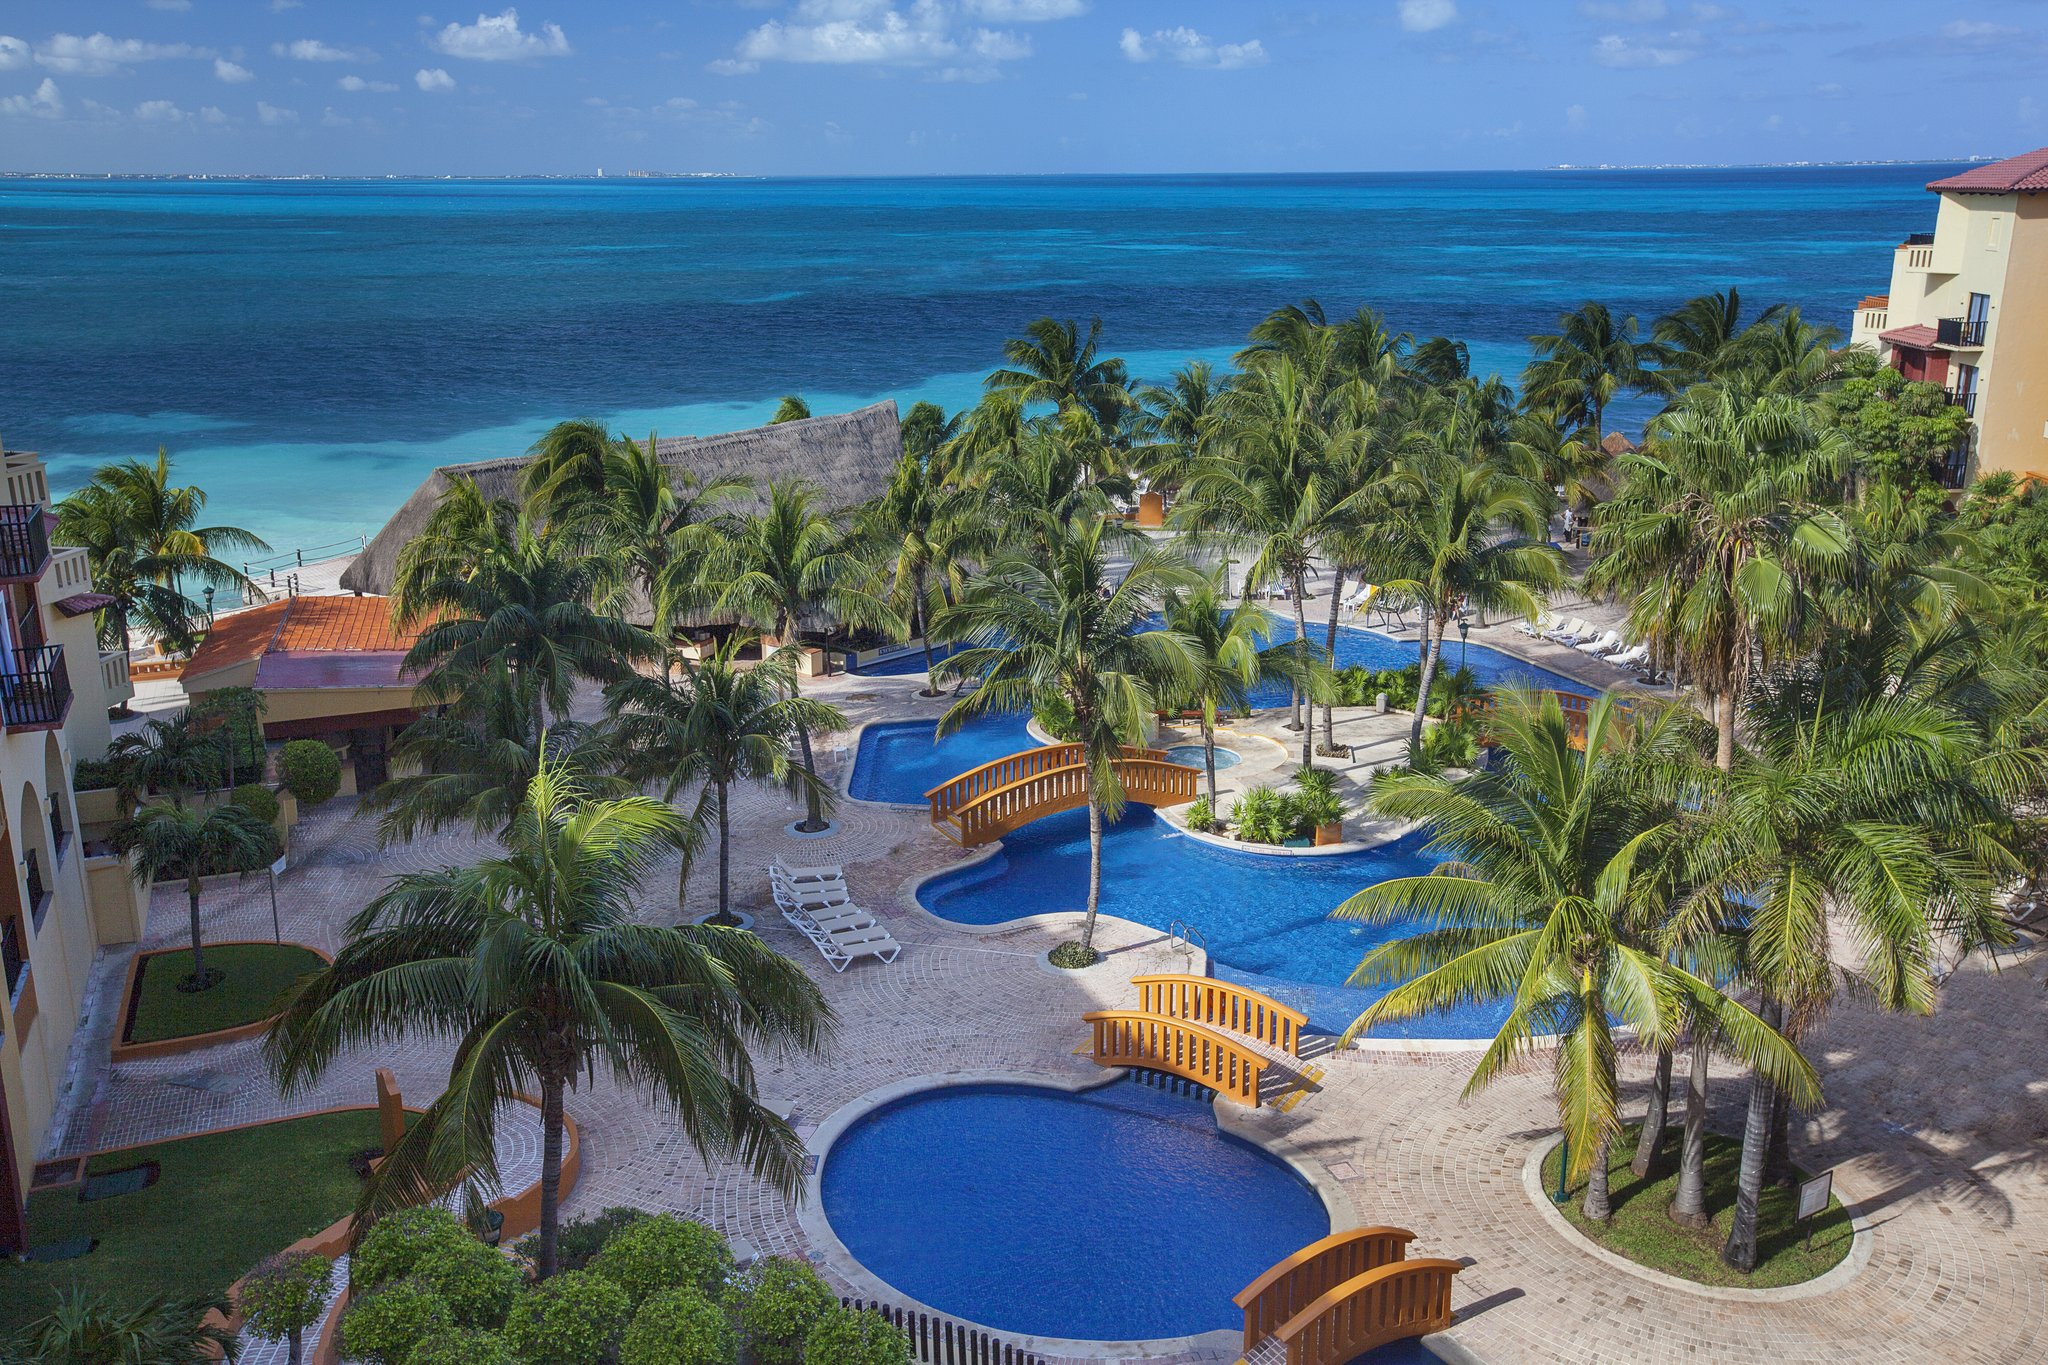 Fiesta Americana Vacation Club at Cancun image